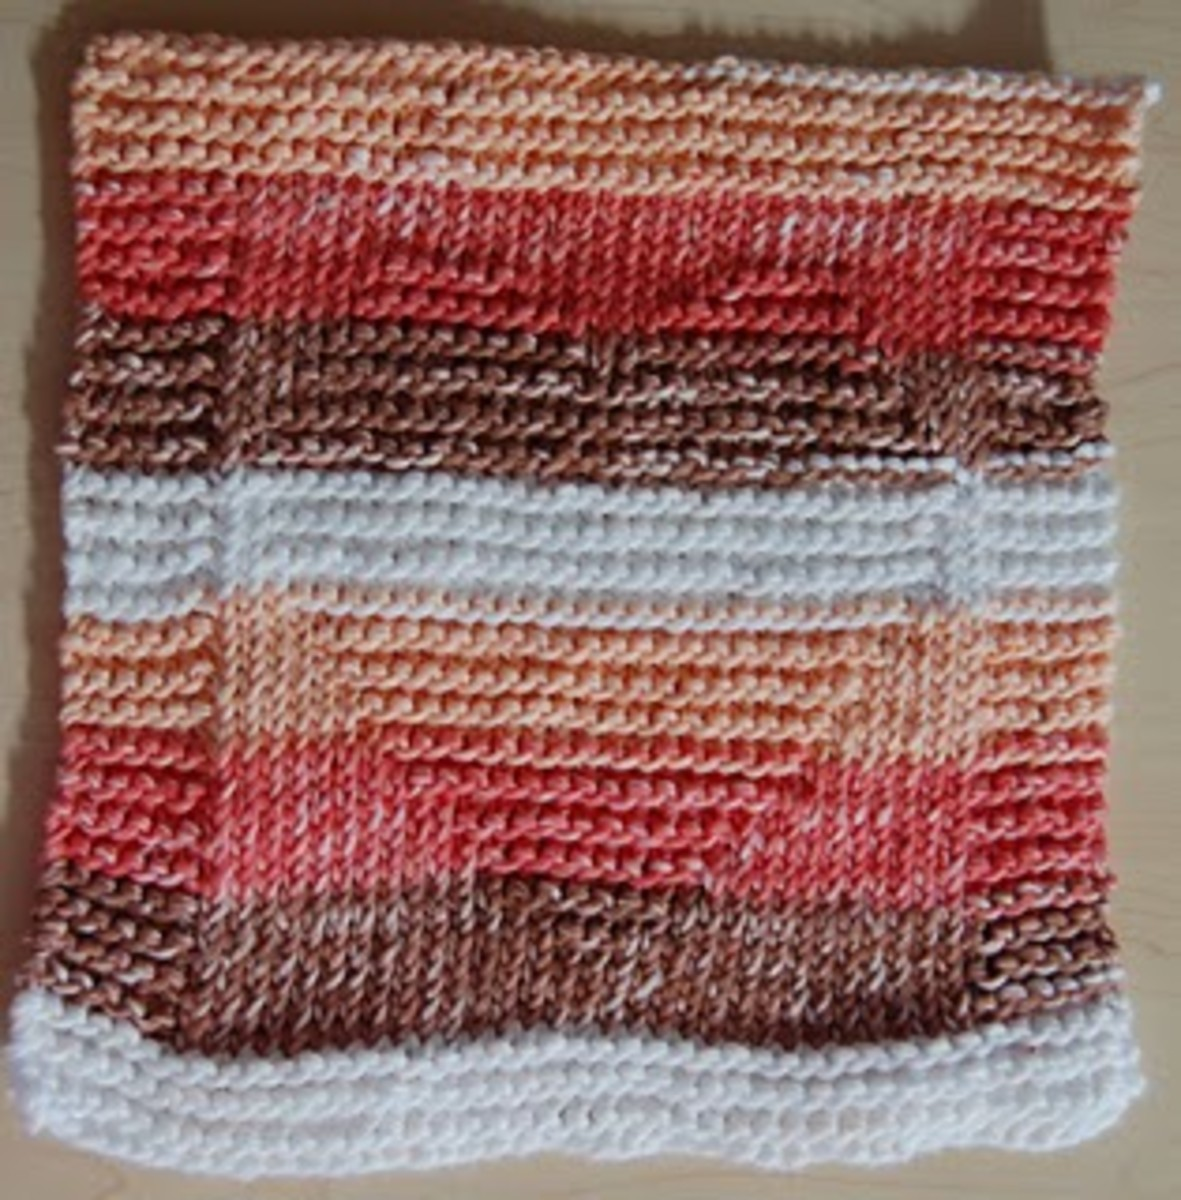 I love this knitted dishcloth of a heart because it is simple. I would however only use one color rather than multiple colors.